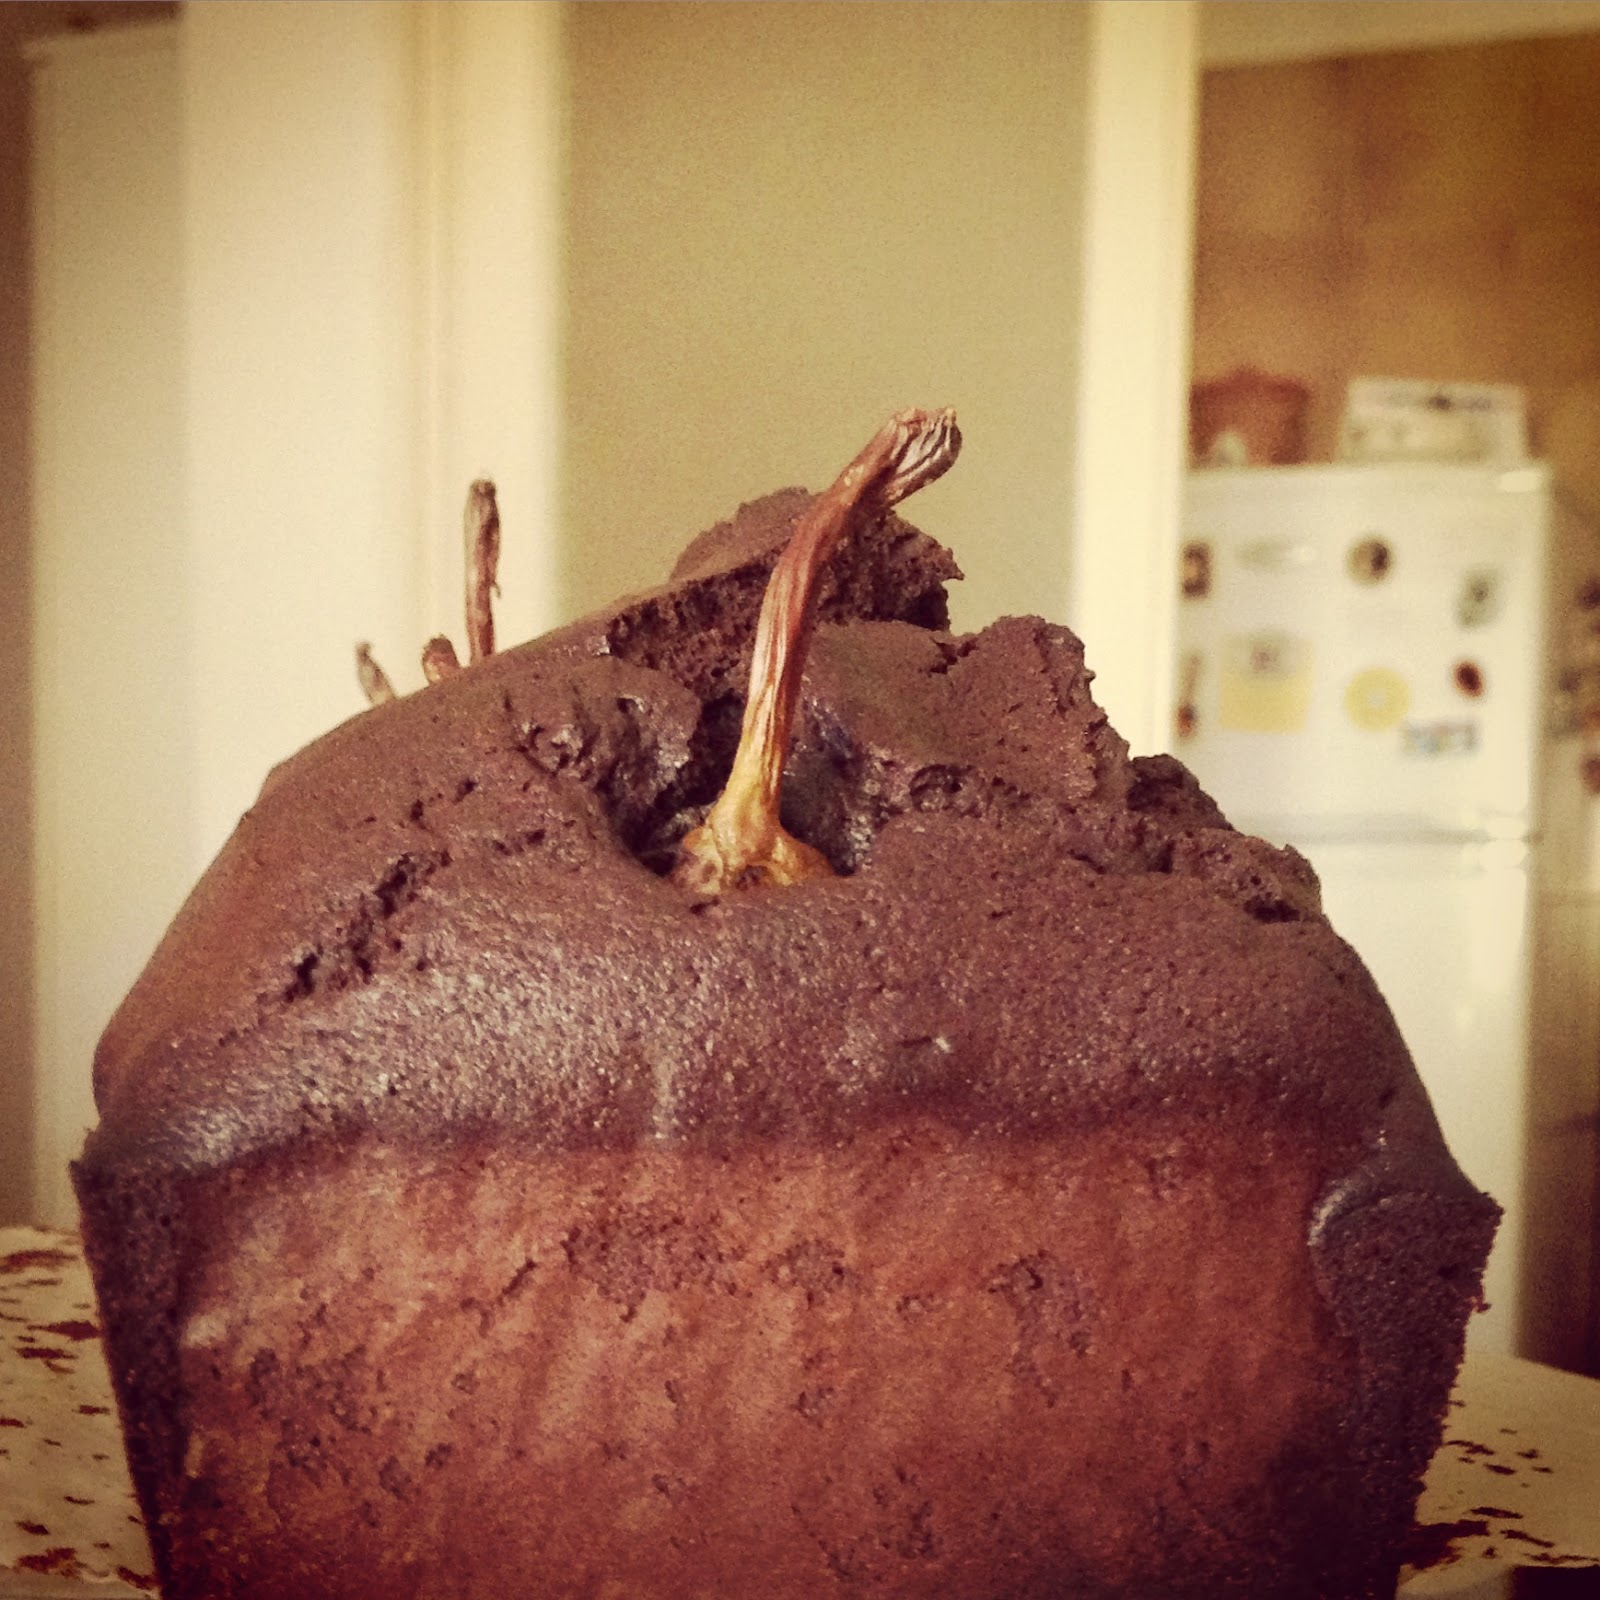 ... Teresa's Kitchen: Torta alle Pere e Cacao (Pear and Chocolate Cake